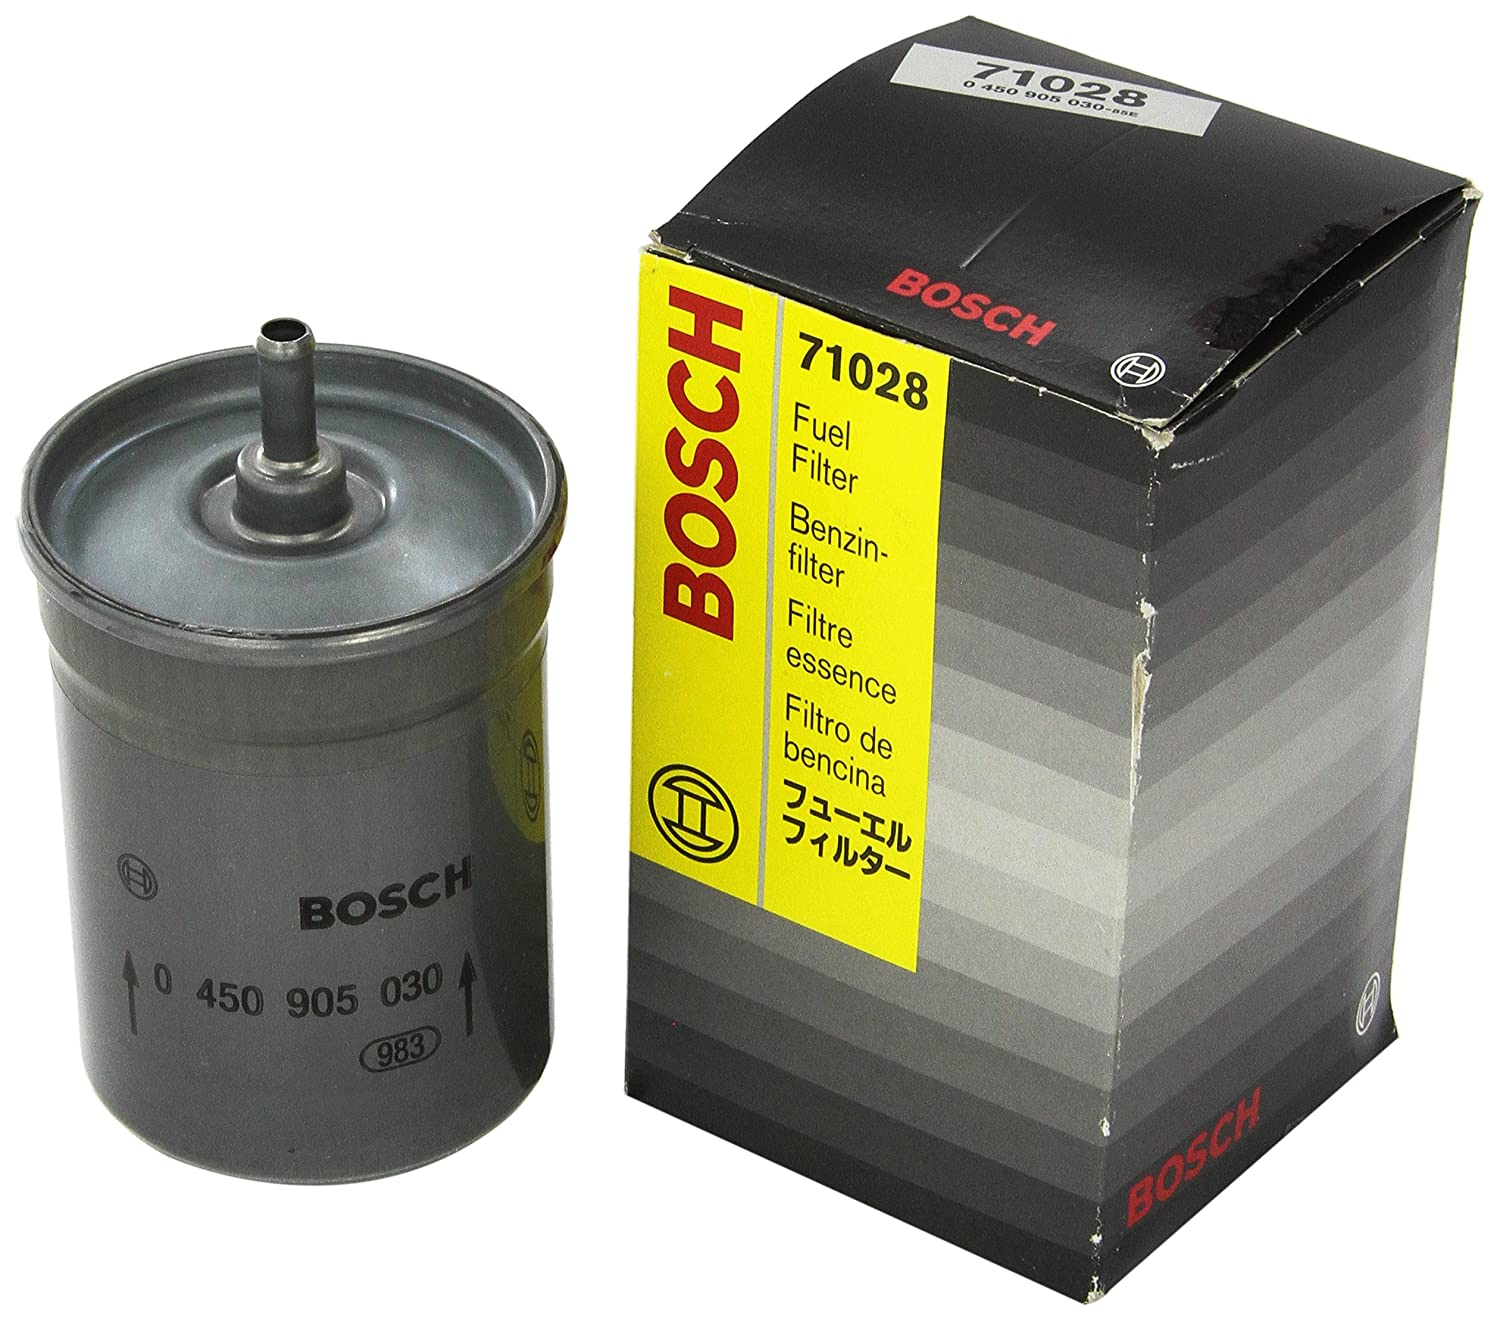 What Are The Best Engine Air Filters For Automobiles To Buy By Is300 Fuel Filter Bosch 71028